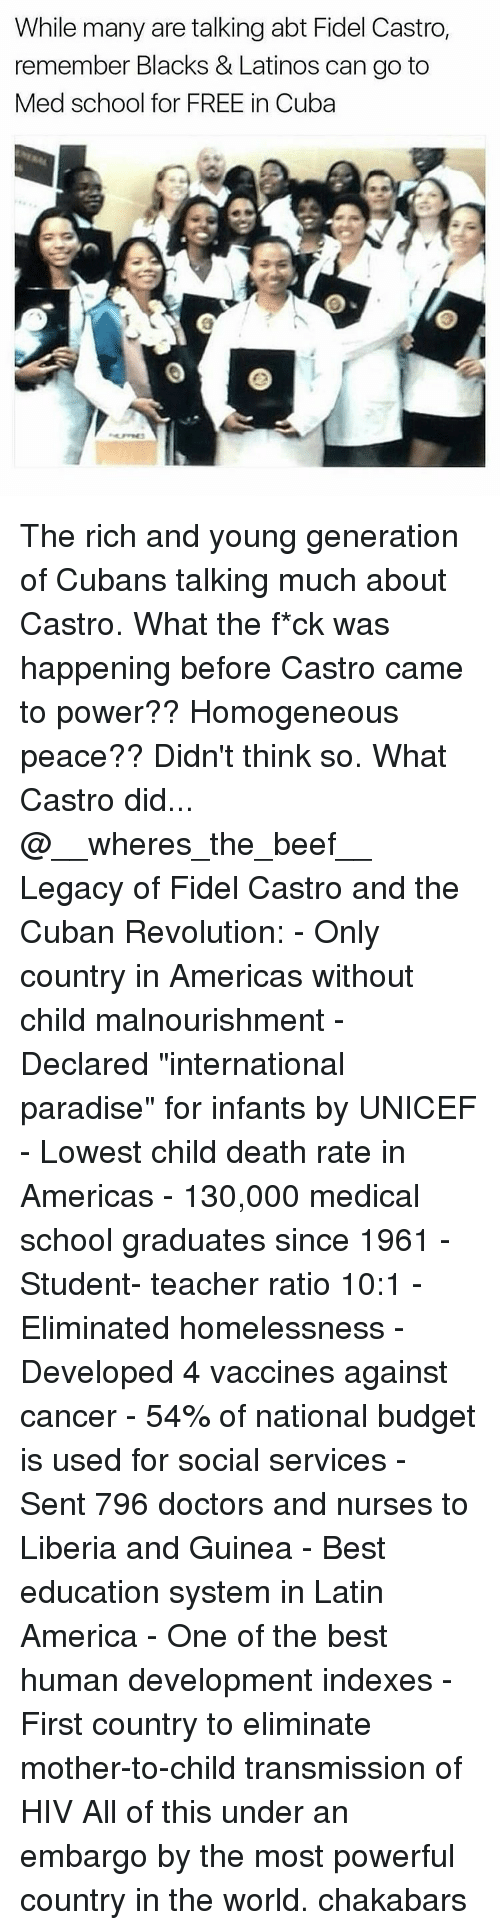 """liberia: While many are talking abt Fidel Castro,  remember Blacks & Latinos can go to  Med school for FREE in Cuba The rich and young generation of Cubans talking much about Castro. What the f*ck was happening before Castro came to power?? Homogeneous peace?? Didn't think so. What Castro did... @__wheres_the_beef__ Legacy of Fidel Castro and the Cuban Revolution: - Only country in Americas without child malnourishment - Declared """"international paradise"""" for infants by UNICEF - Lowest child death rate in Americas - 130,000 medical school graduates since 1961 - Student- teacher ratio 10:1 - Eliminated homelessness - Developed 4 vaccines against cancer - 54% of national budget is used for social services - Sent 796 doctors and nurses to Liberia and Guinea - Best education system in Latin America - One of the best human development indexes - First country to eliminate mother-to-child transmission of HIV All of this under an embargo by the most powerful country in the world. chakabars"""